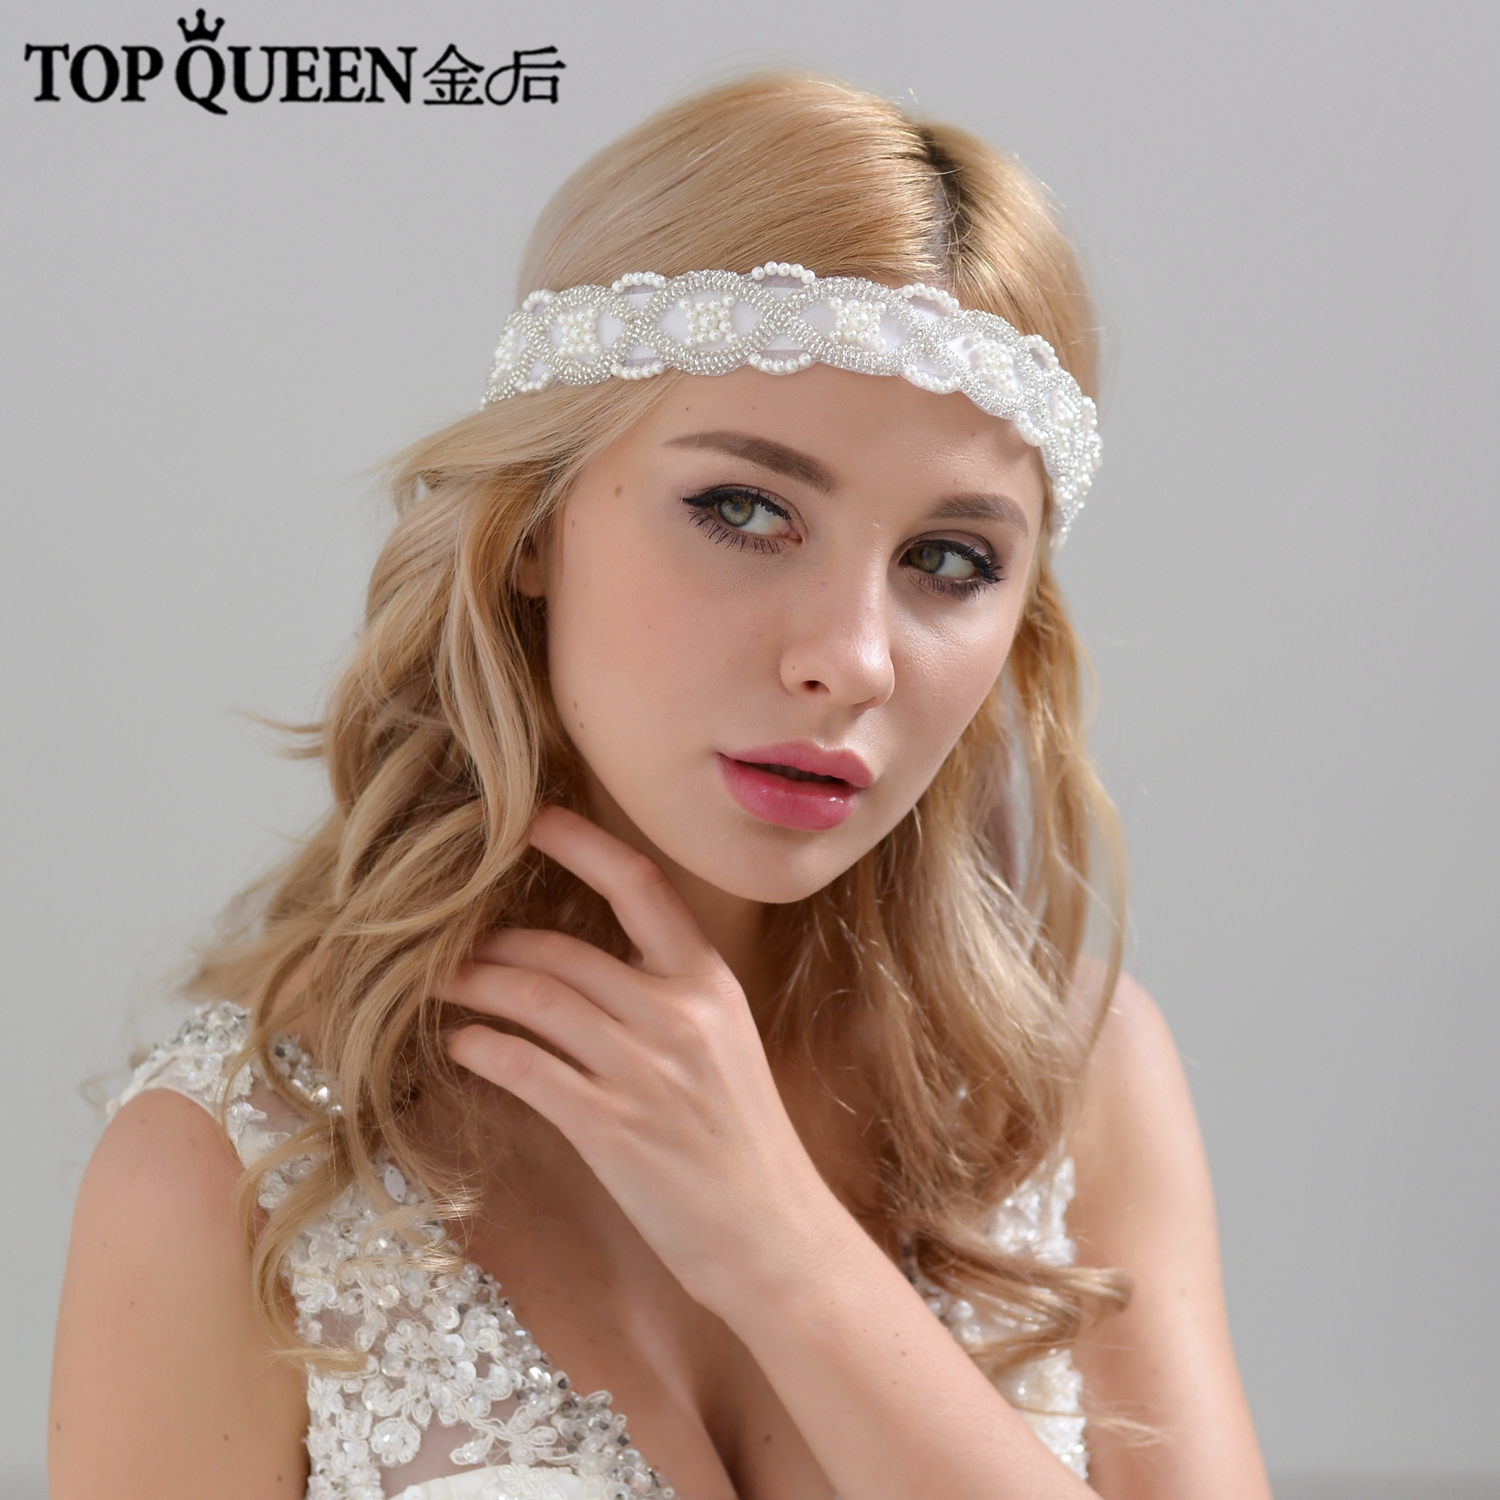 TOPQUEEN H221 Hot Sales Bridal Headband Wedding Hair Accessories Diamond And Beaded Lace Bridal Headpieces Fast Shipping Stock